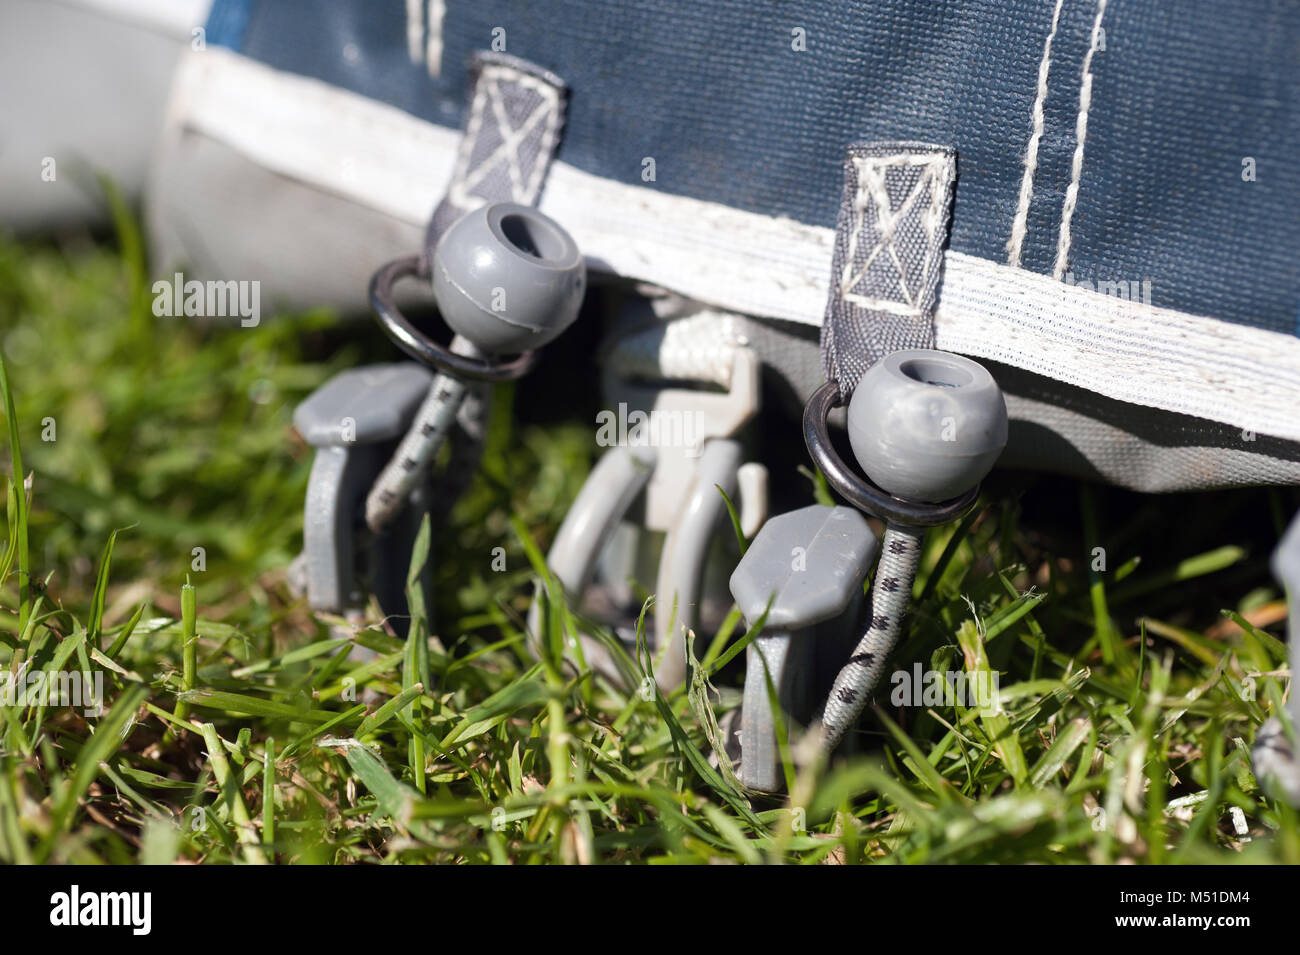 caravan awning ground pegs holding down acrylic caravan awning to the ground - Stock Image